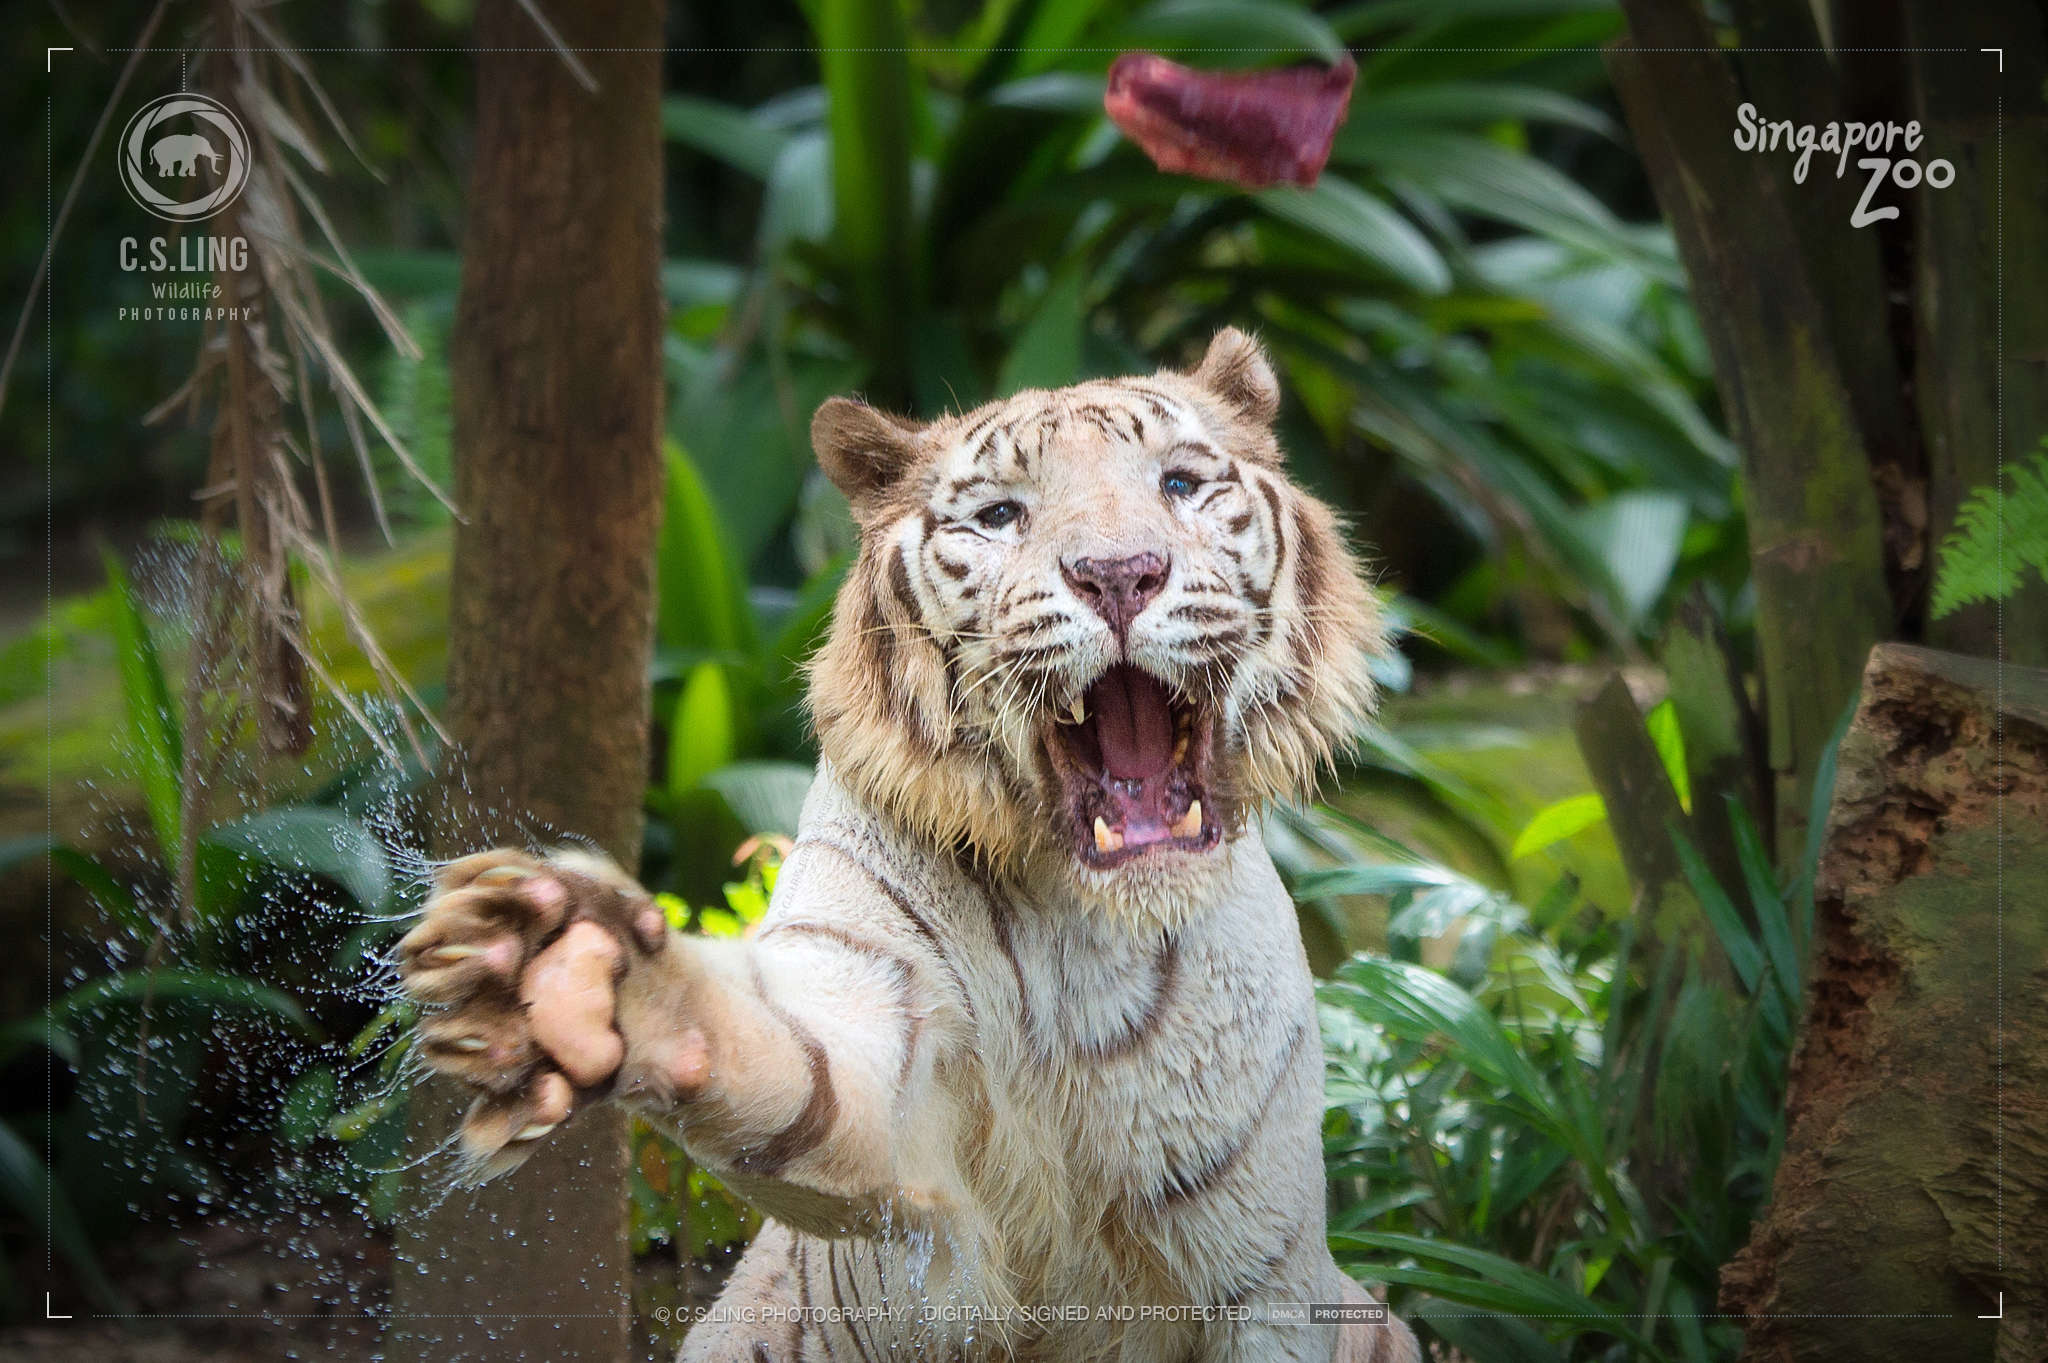 Singapore Zoo White Tiger by C.S.Ling